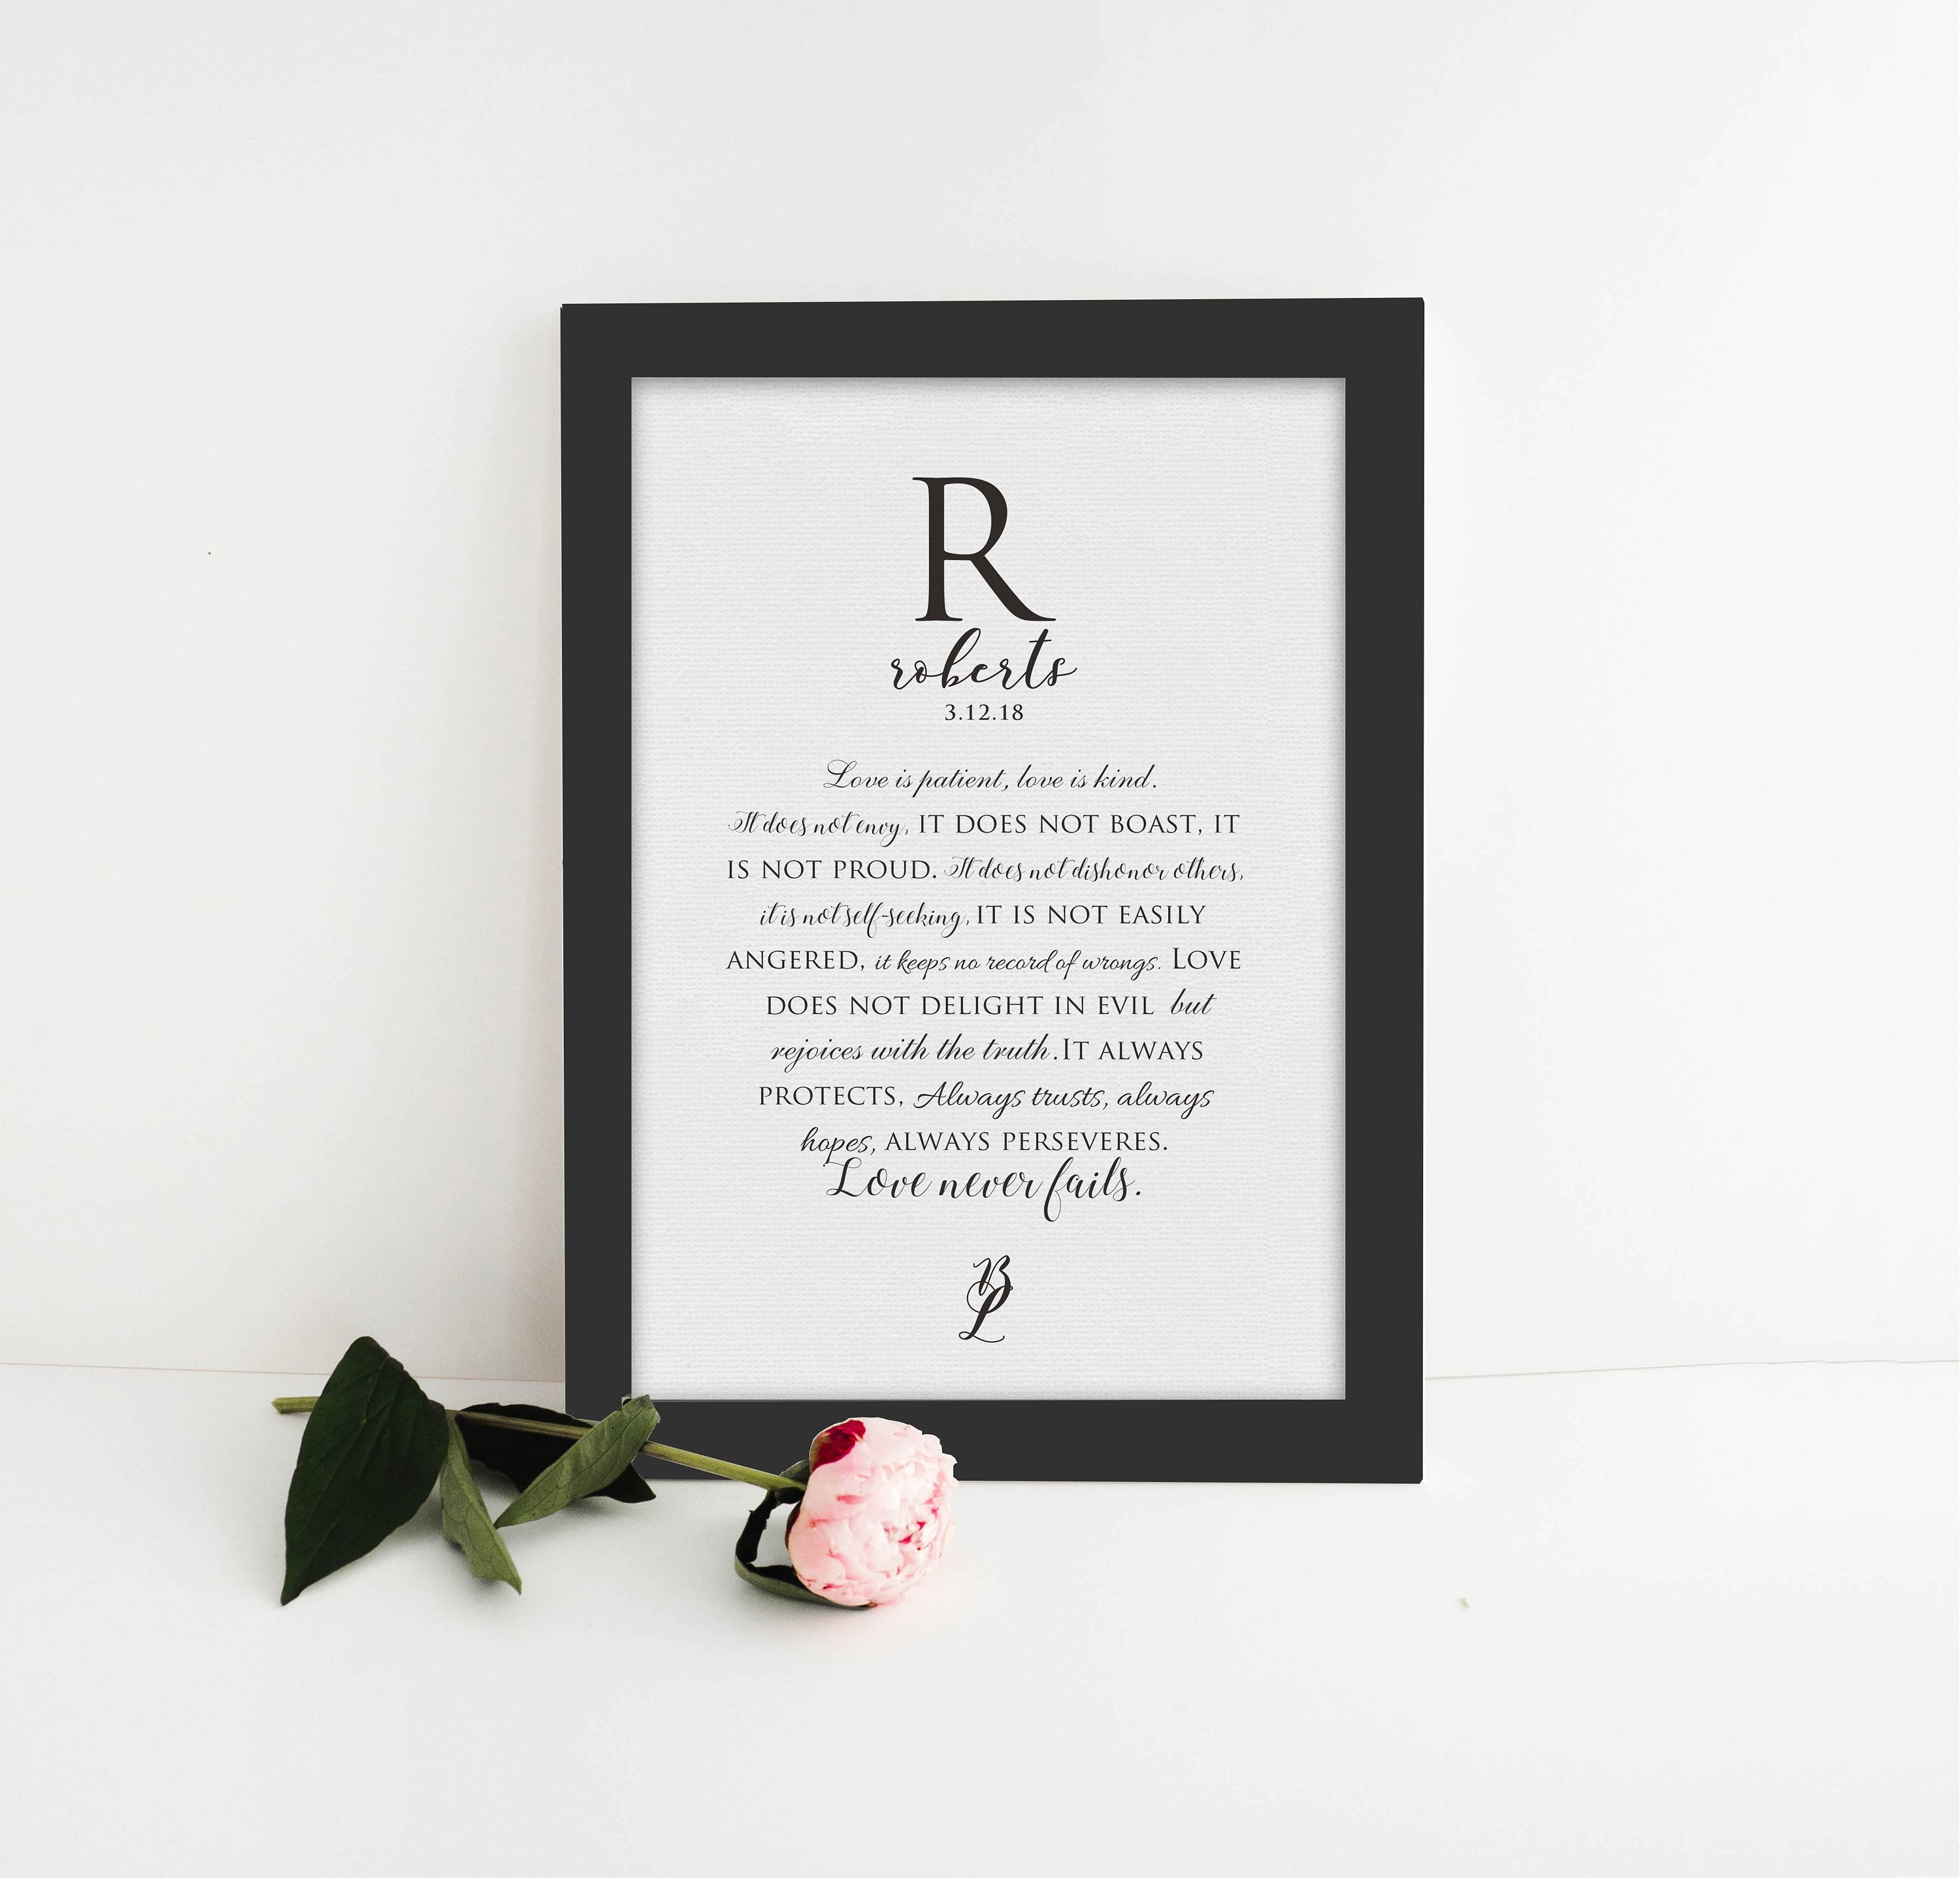 Love is patient, love is kind, personalized, wedding, gift, for wife, Framed, Canvas, Anniversary, paper, husband, 1st anniversary, 1 Cor 13